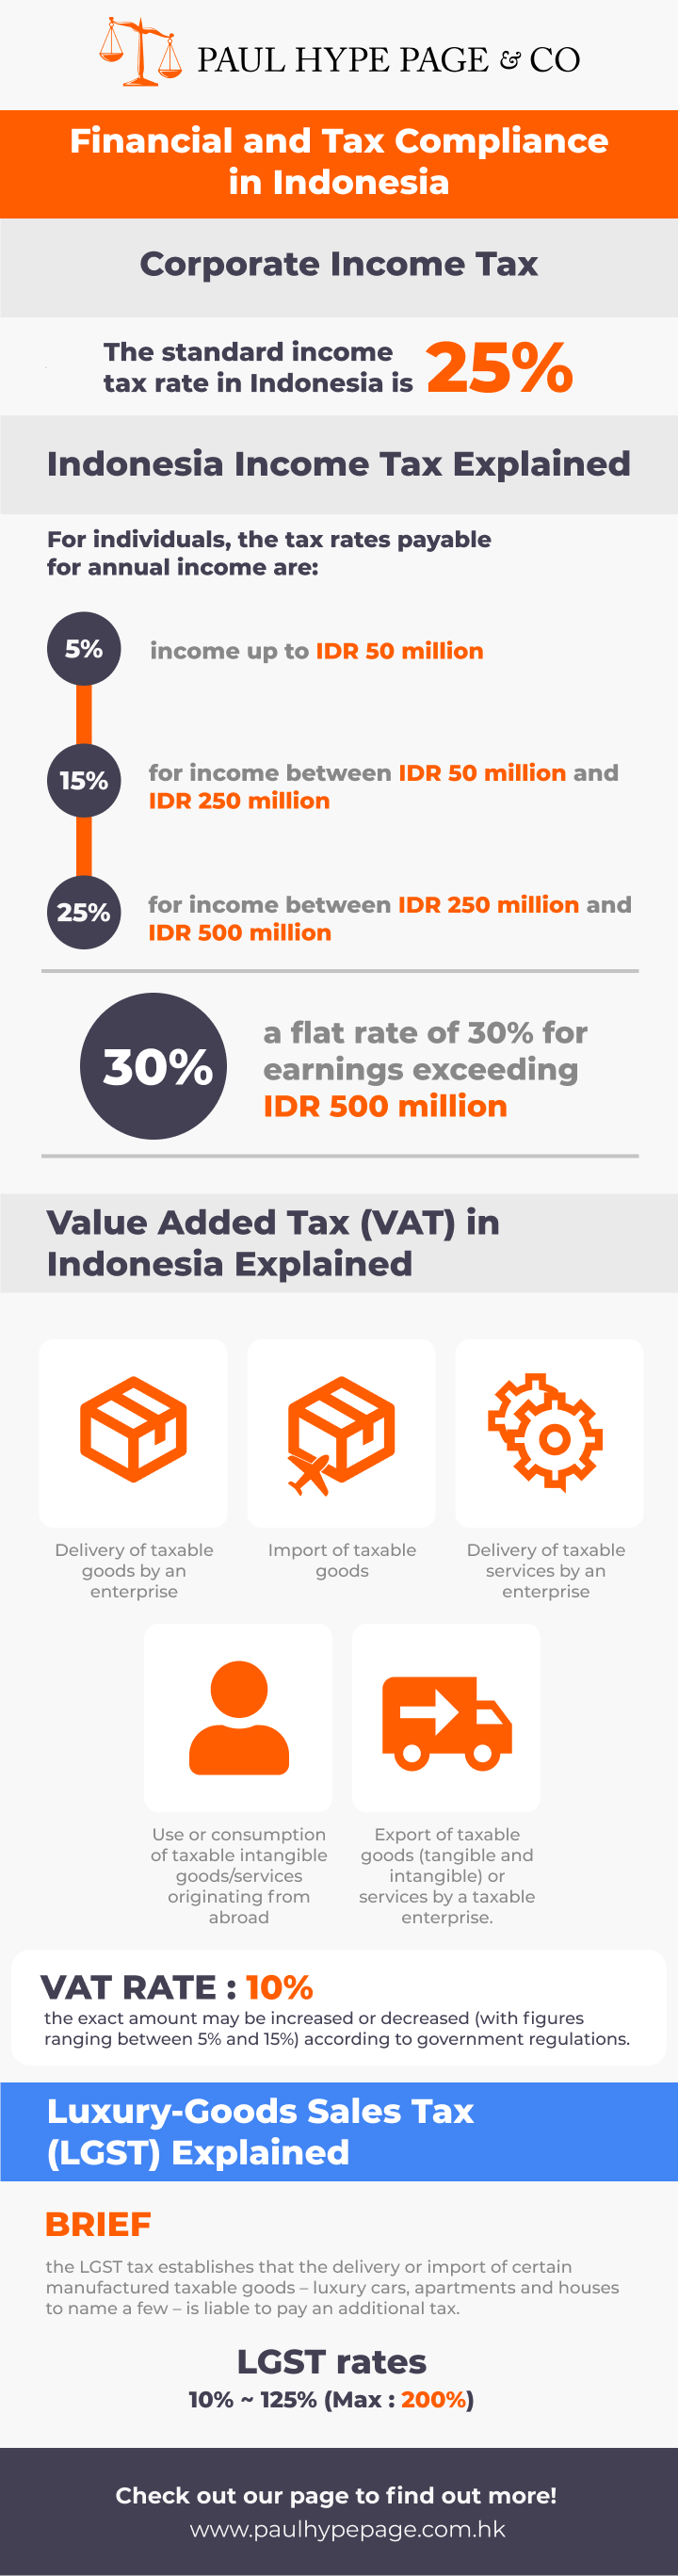 Financial and Tax Compliance in Indonesia